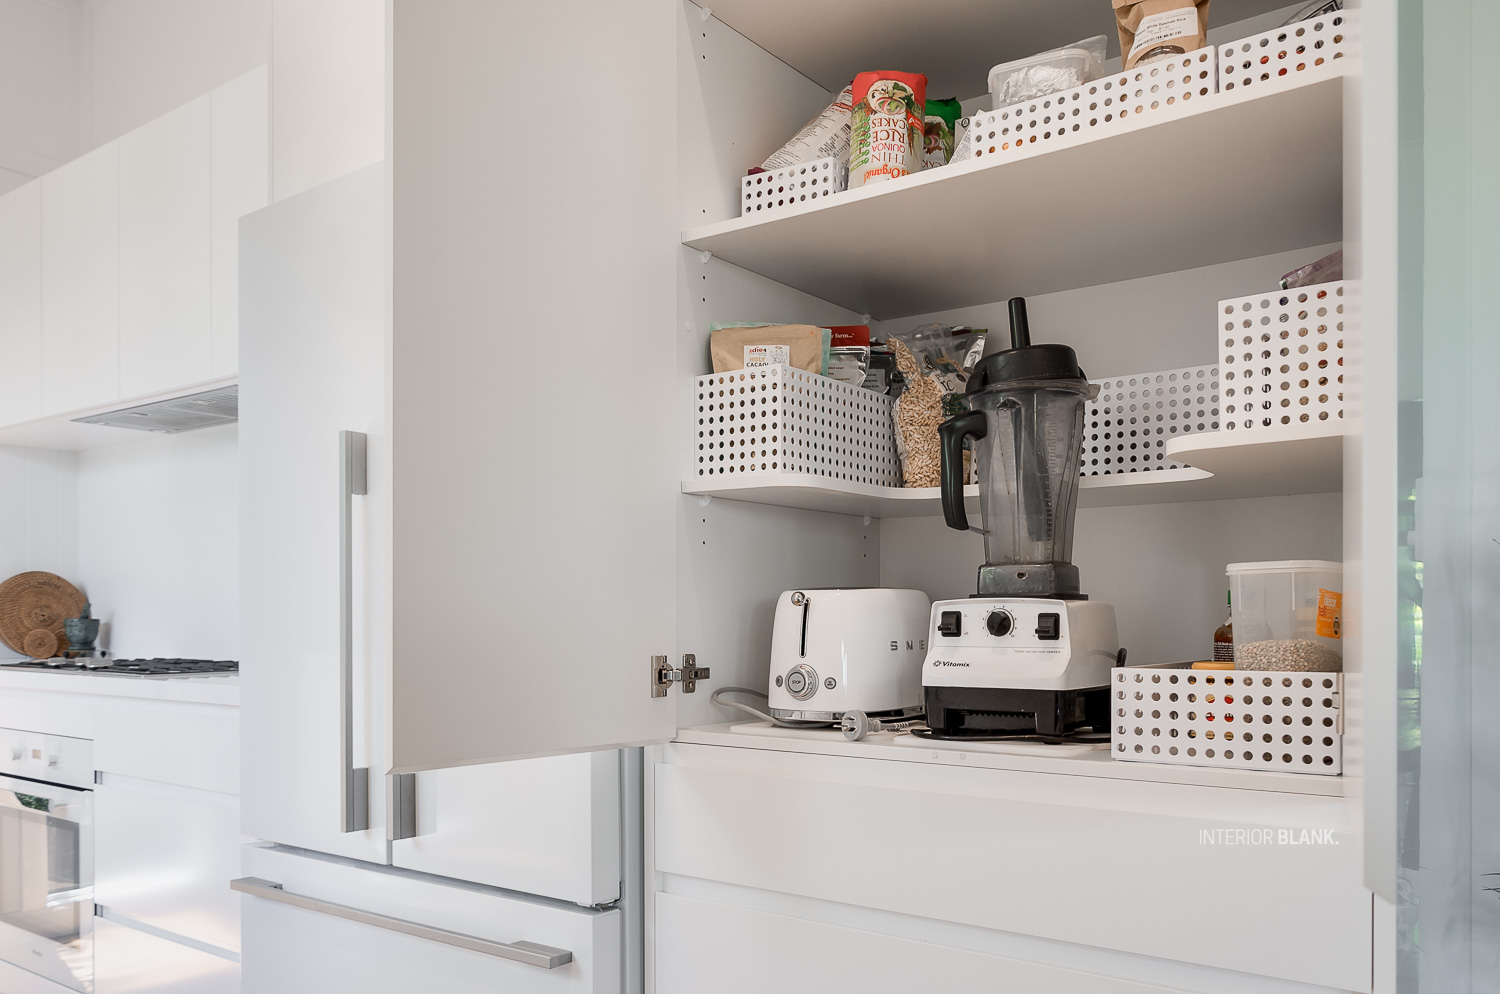 Kitchen Design storage solutions by Interior Blank